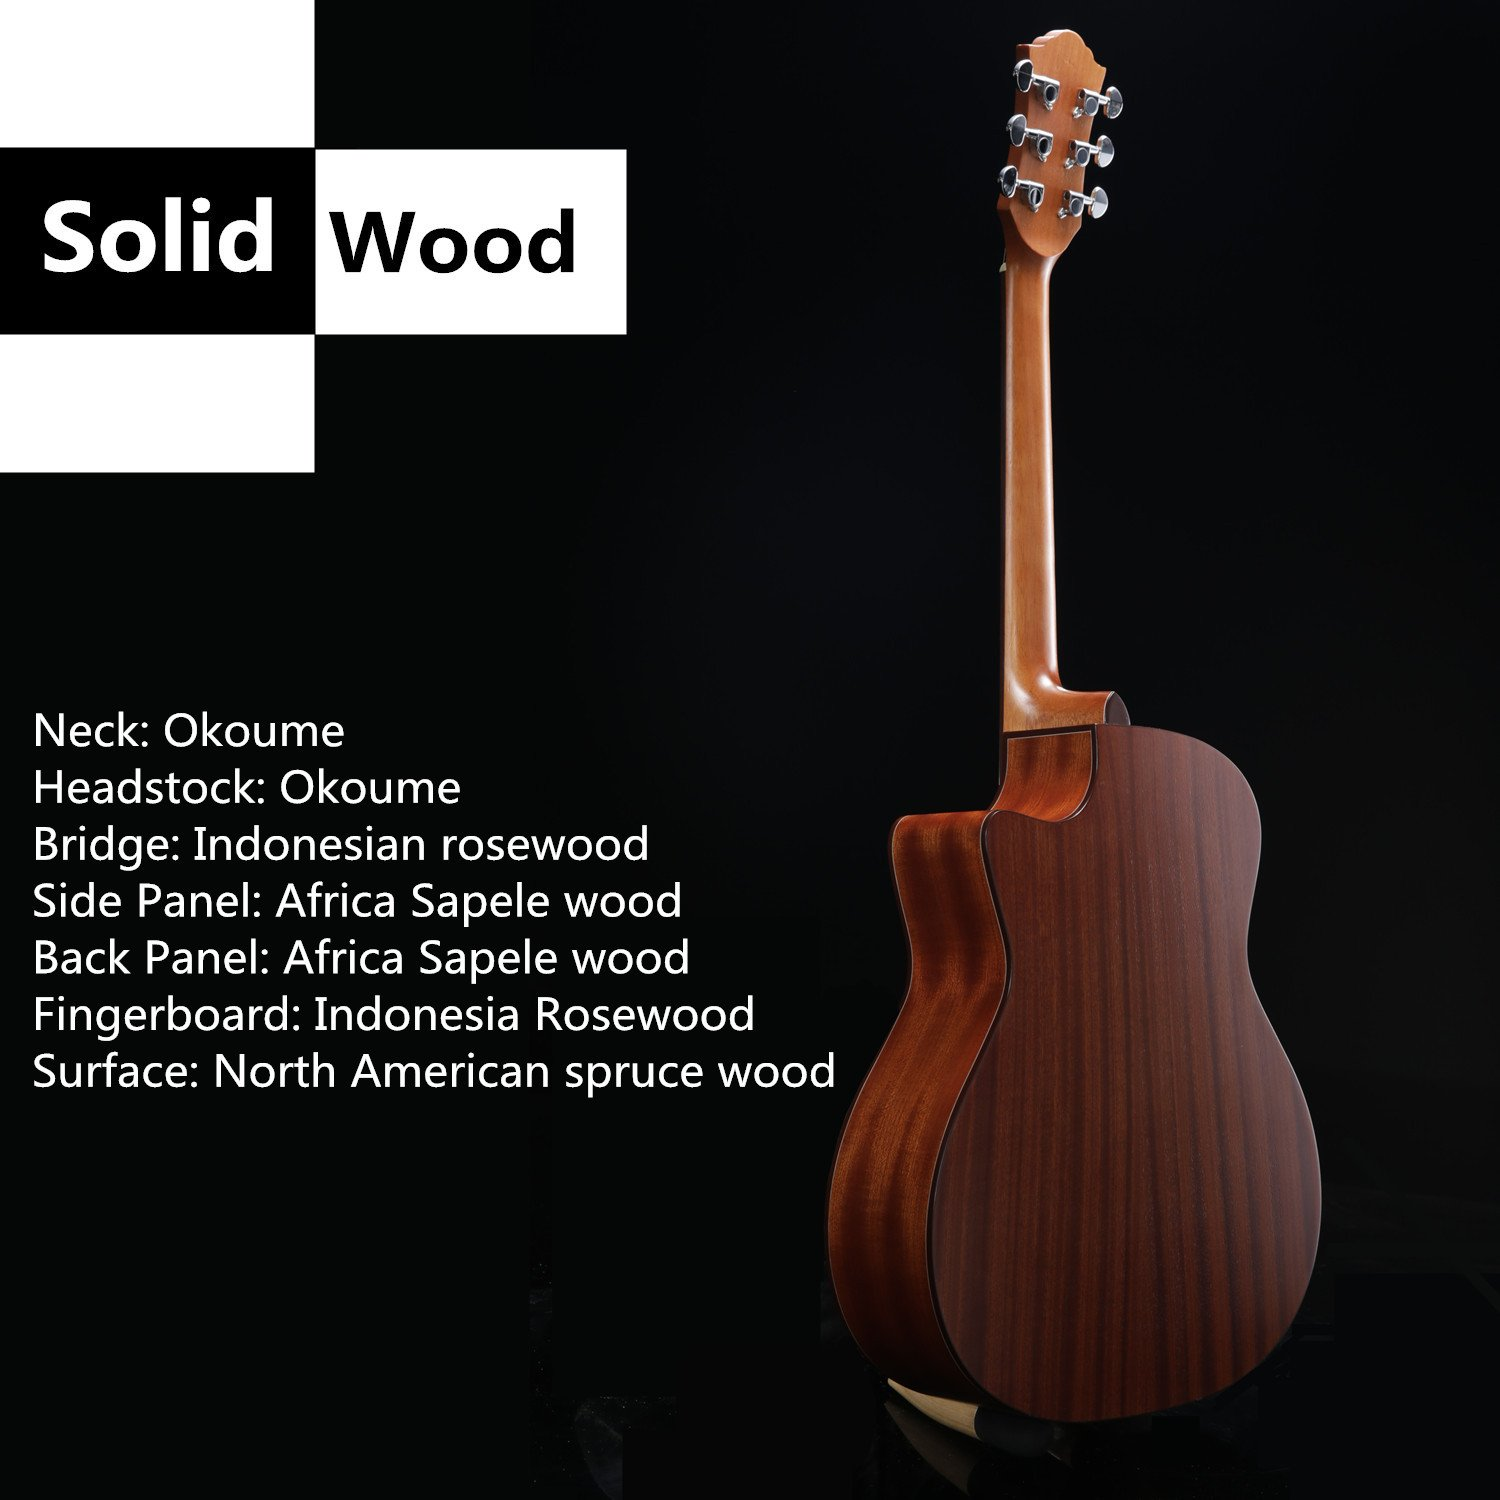 The Specs for the Guitar Ranch Full Size Grand Auditorium Acoustic Guitar